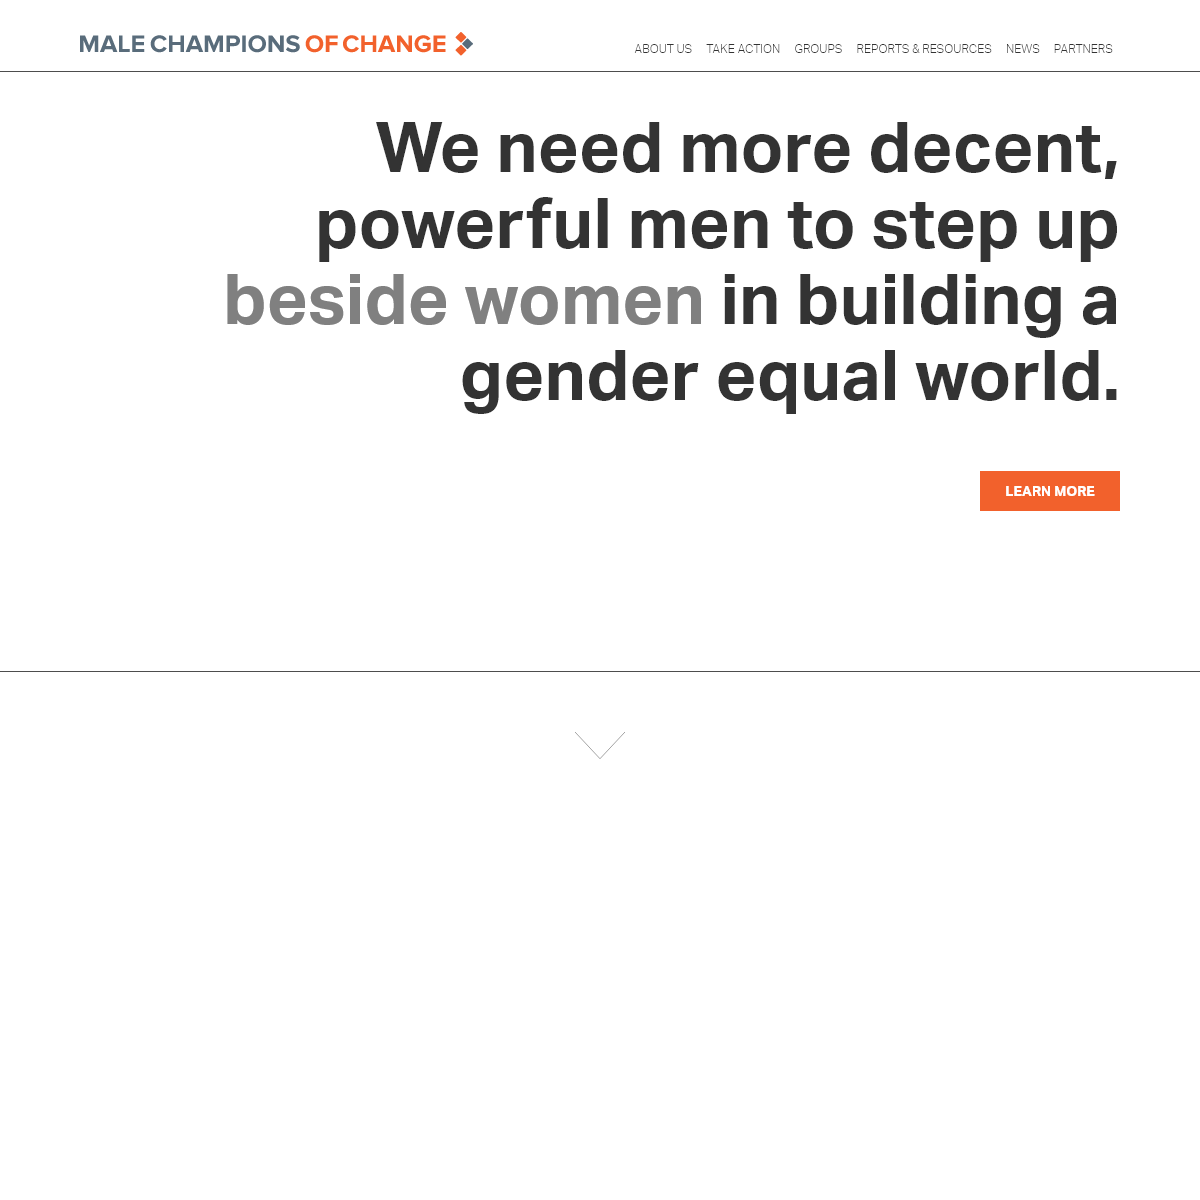 Male Champions of Change